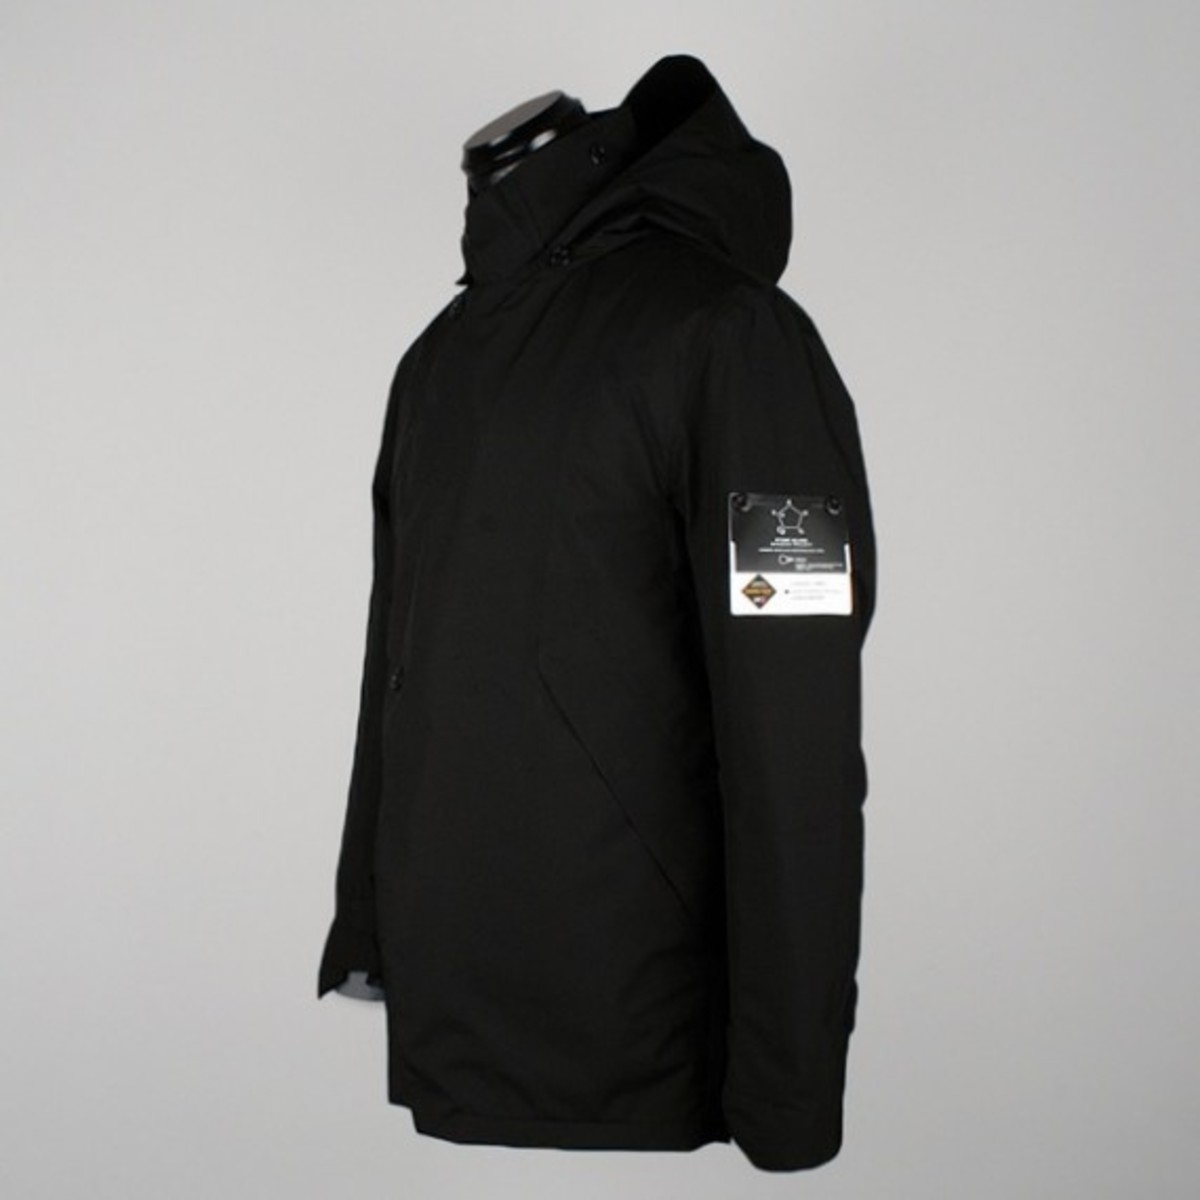 stone-island-shadow-project-spring-summer-2012-collection-03